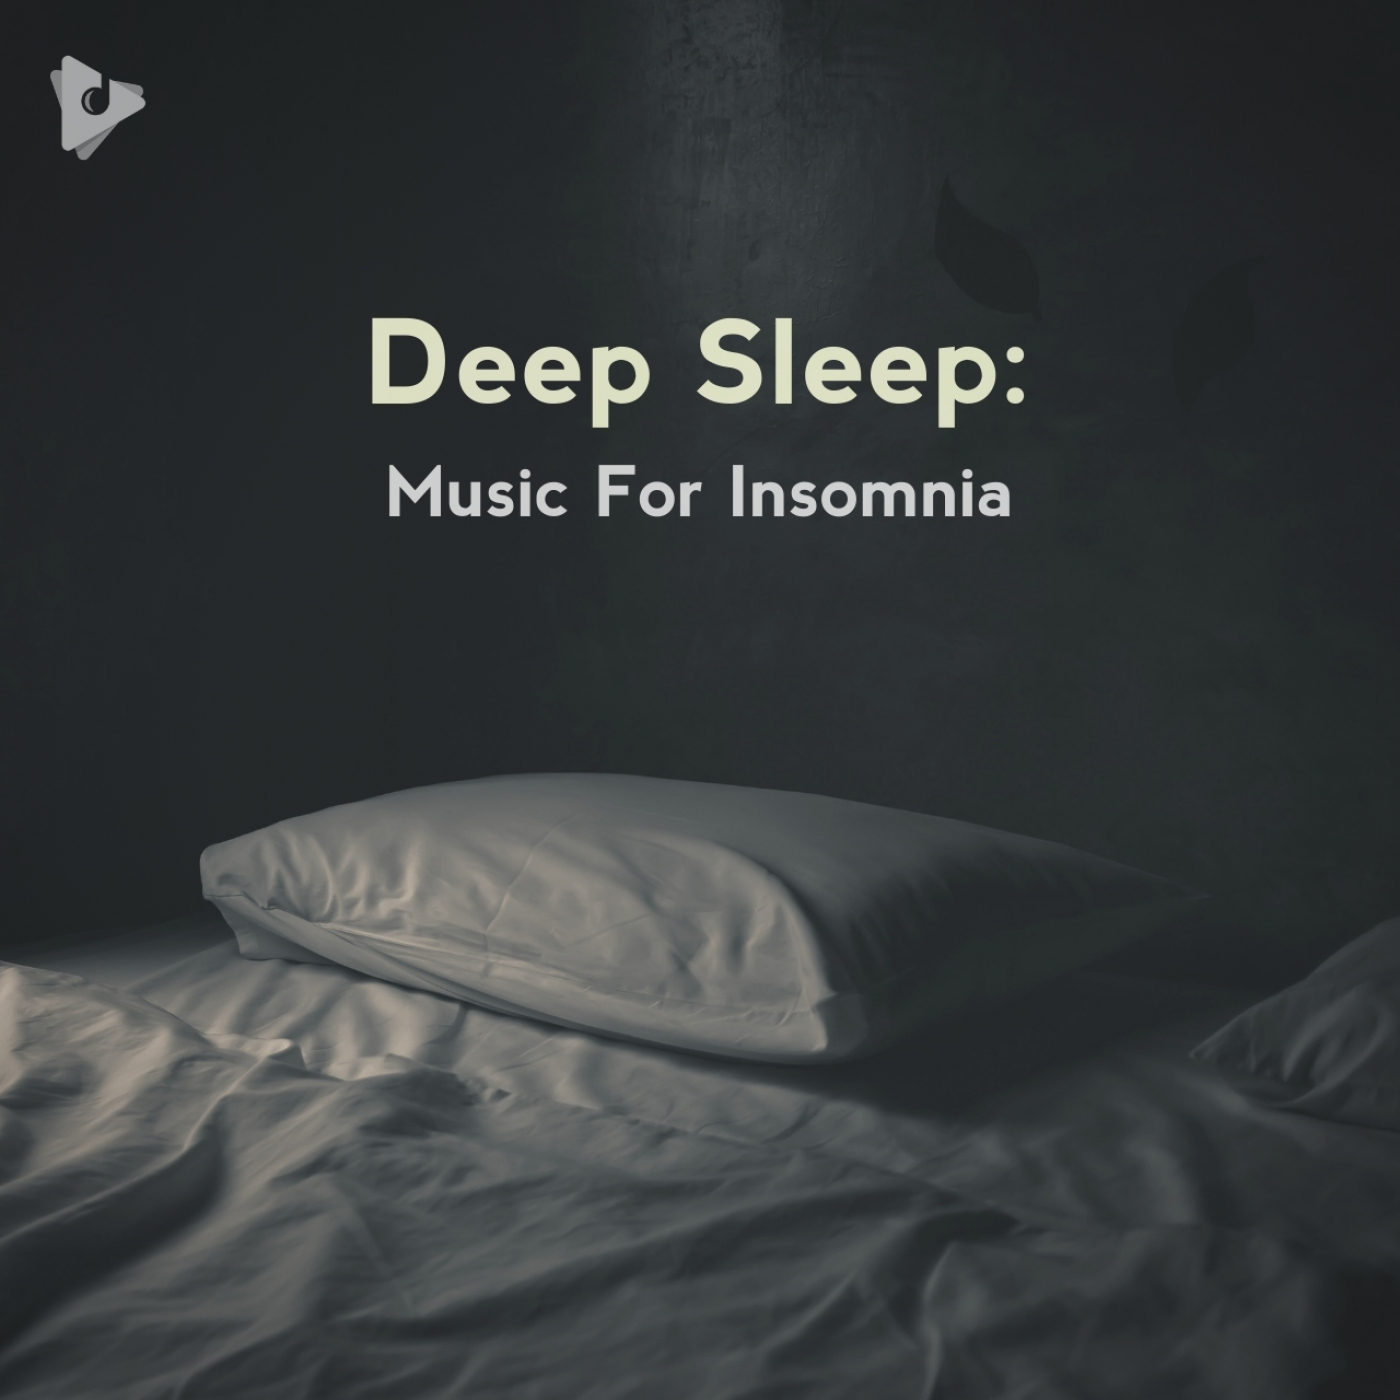 Deep Sleep: Music For Insomnia